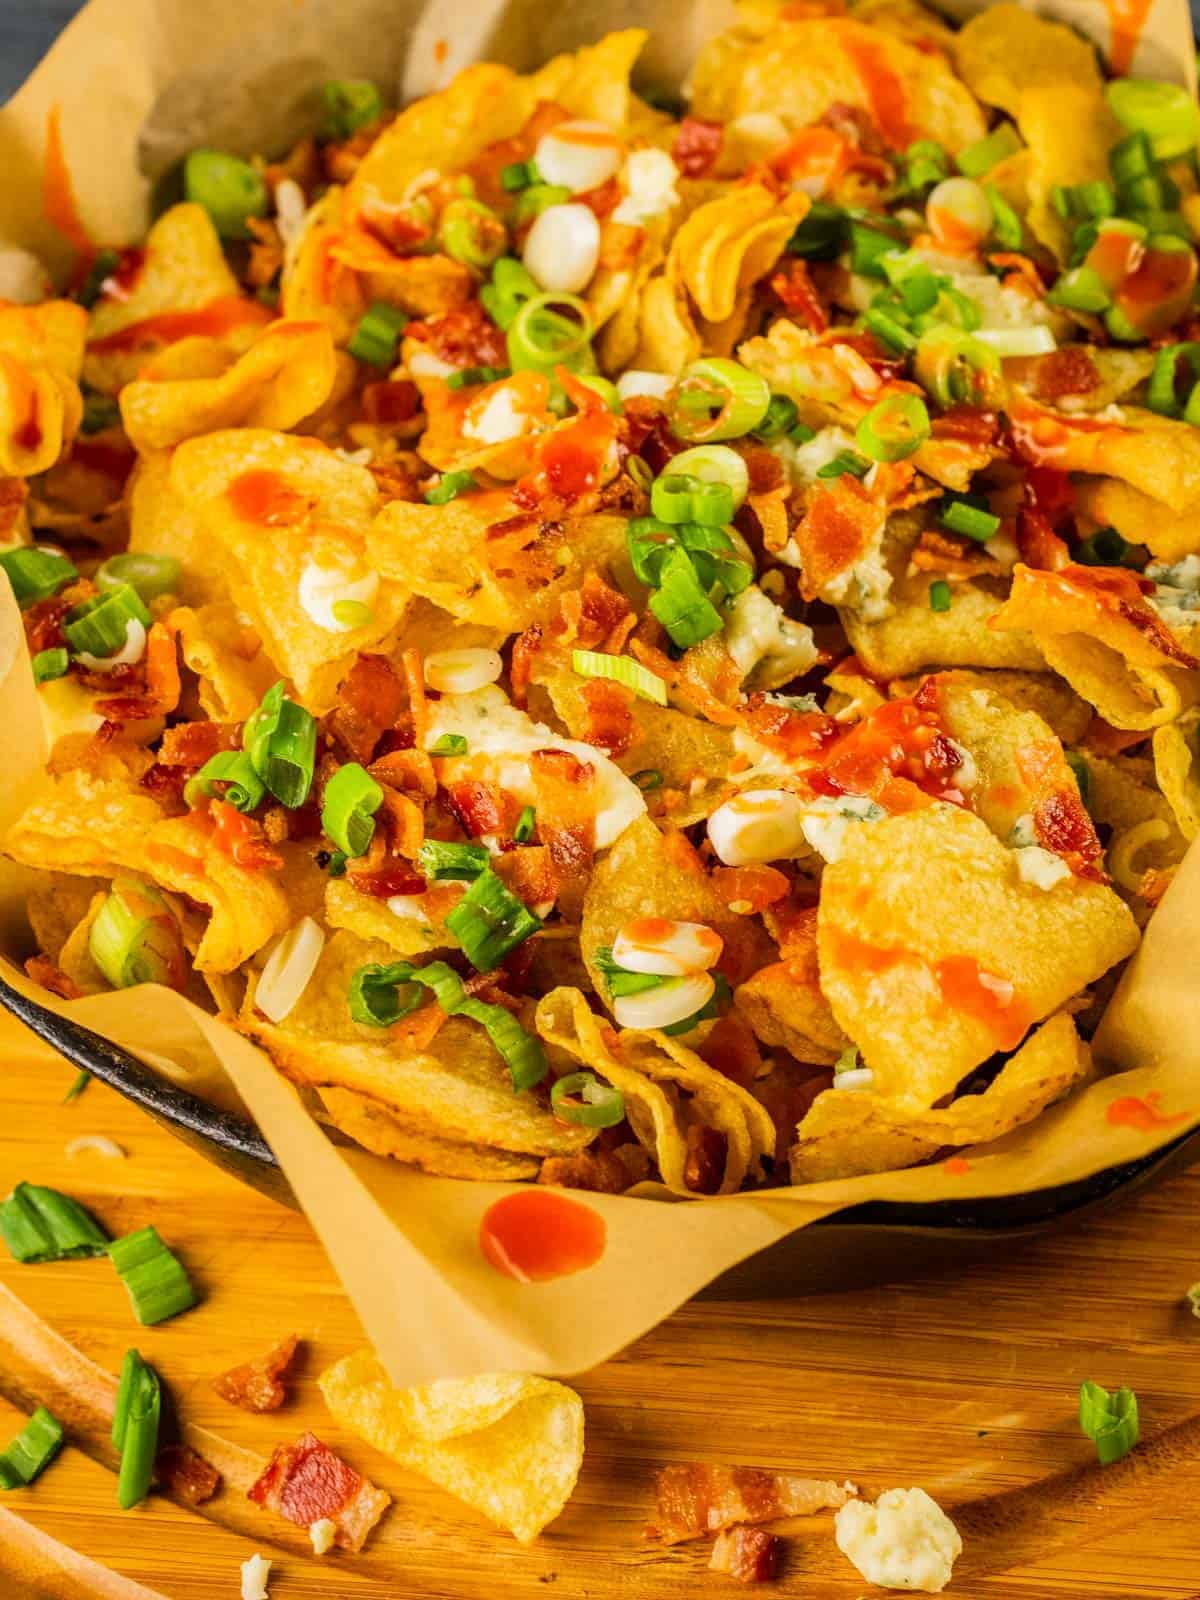 chips layered with blue cheese, bacon, scallions and hot sauce